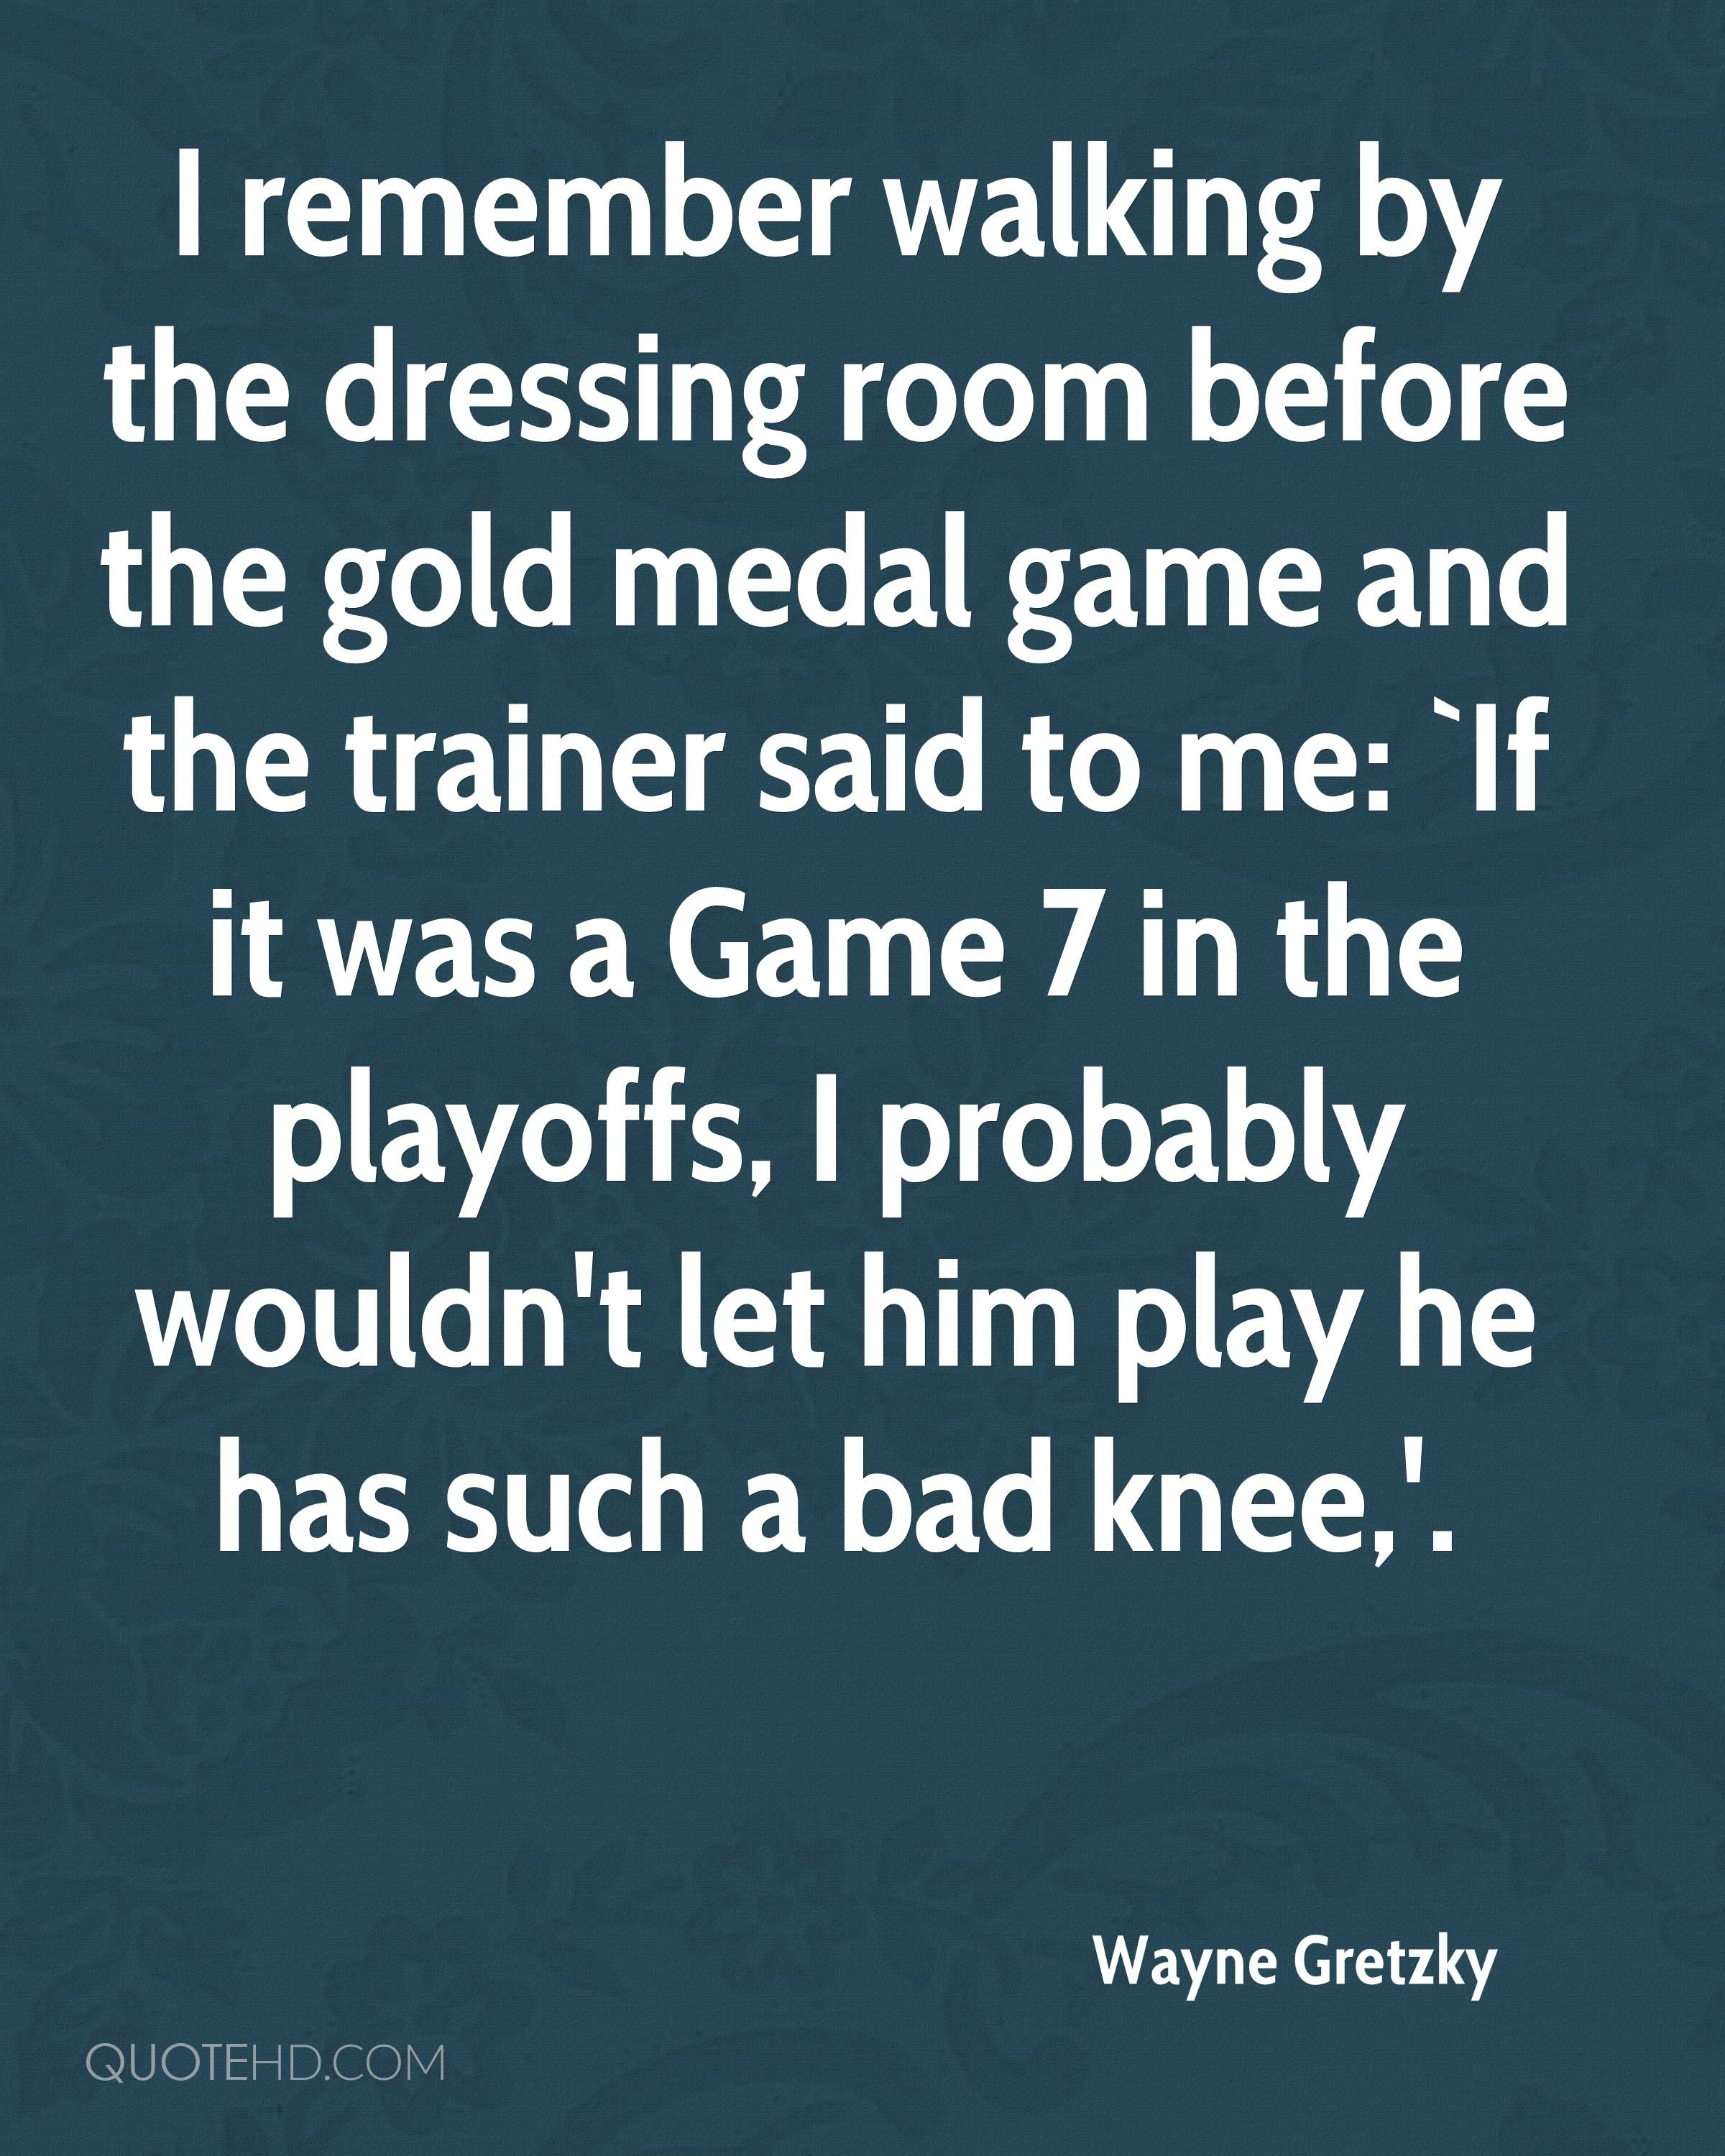 I remember walking by the dressing room before the gold medal game and the trainer said to me: `If it was a Game 7 in the playoffs, I probably wouldn't let him play he has such a bad knee,'.